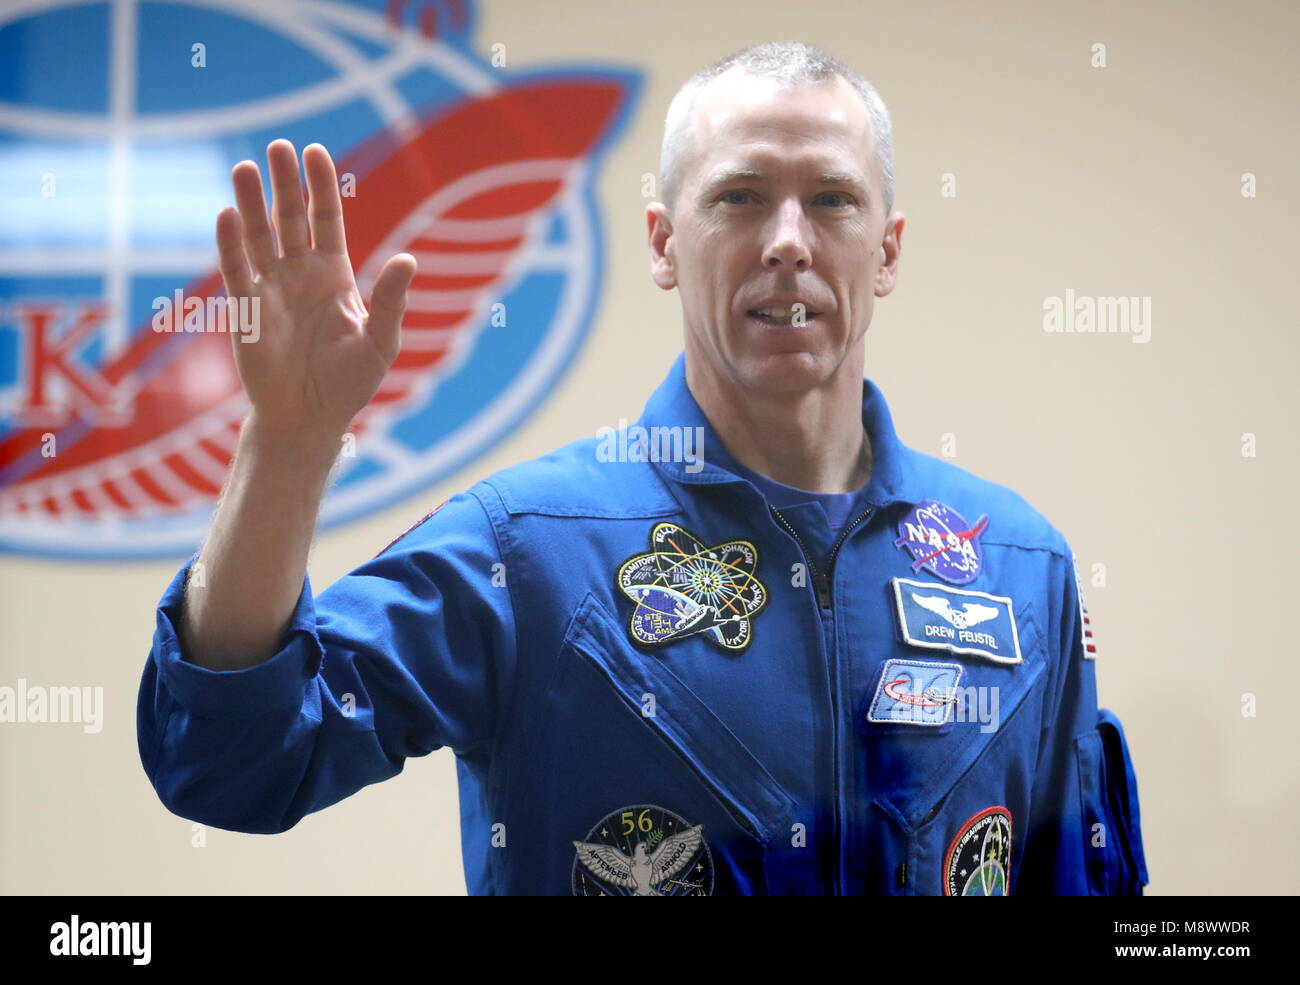 Baikonur, Kazakhstan. 20th Mar, 2018. BAIKONUR, KAZAKHSTAN - MARCH 20, 2018: NASA astronaut Andrew J. Feustel waves - Stock Image